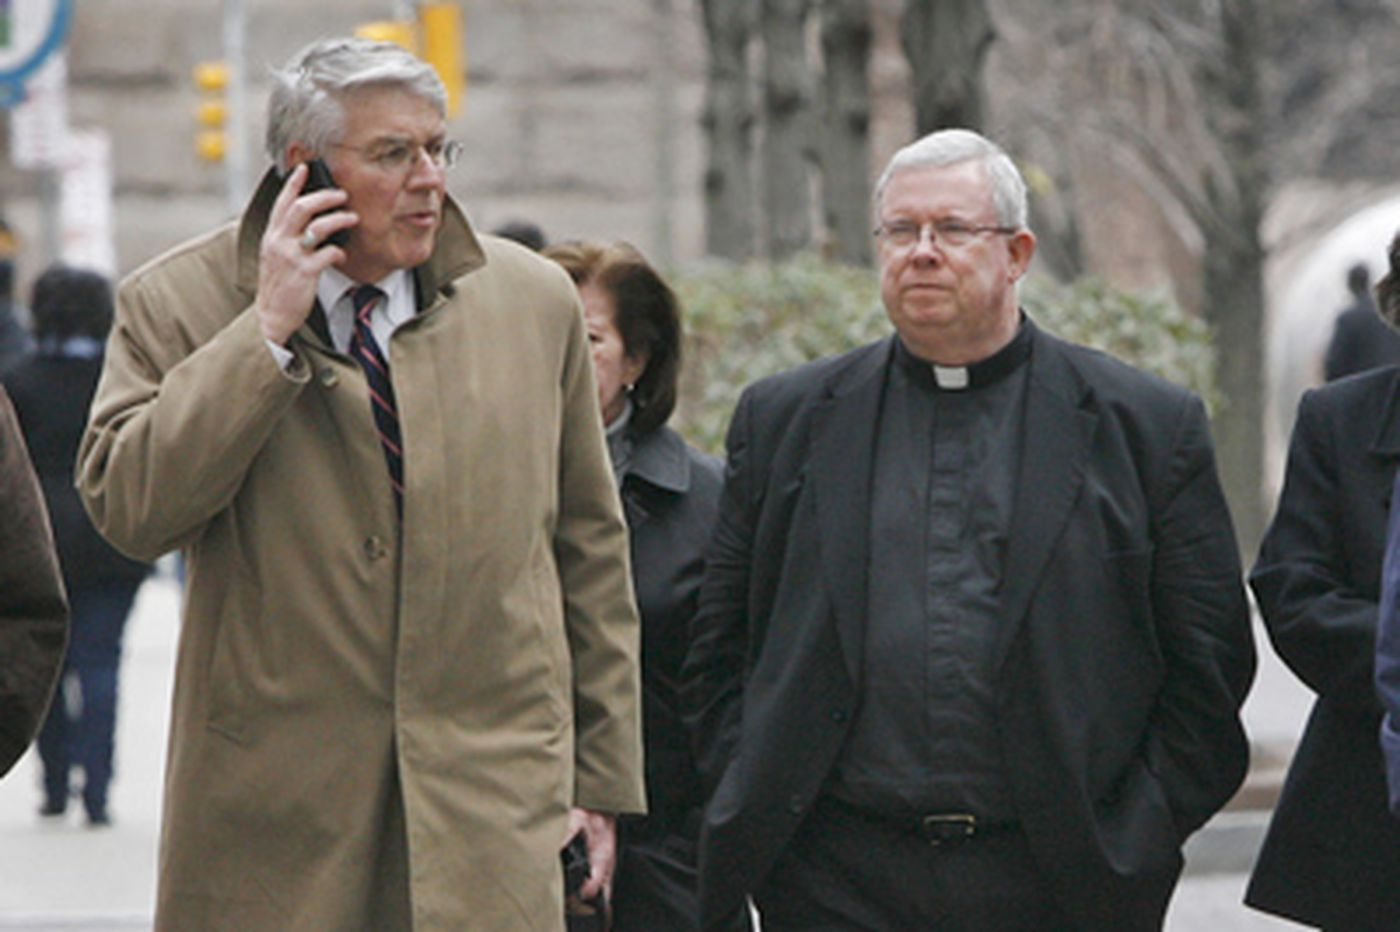 Monsignor's lawyers seek dismissal of enabling charges